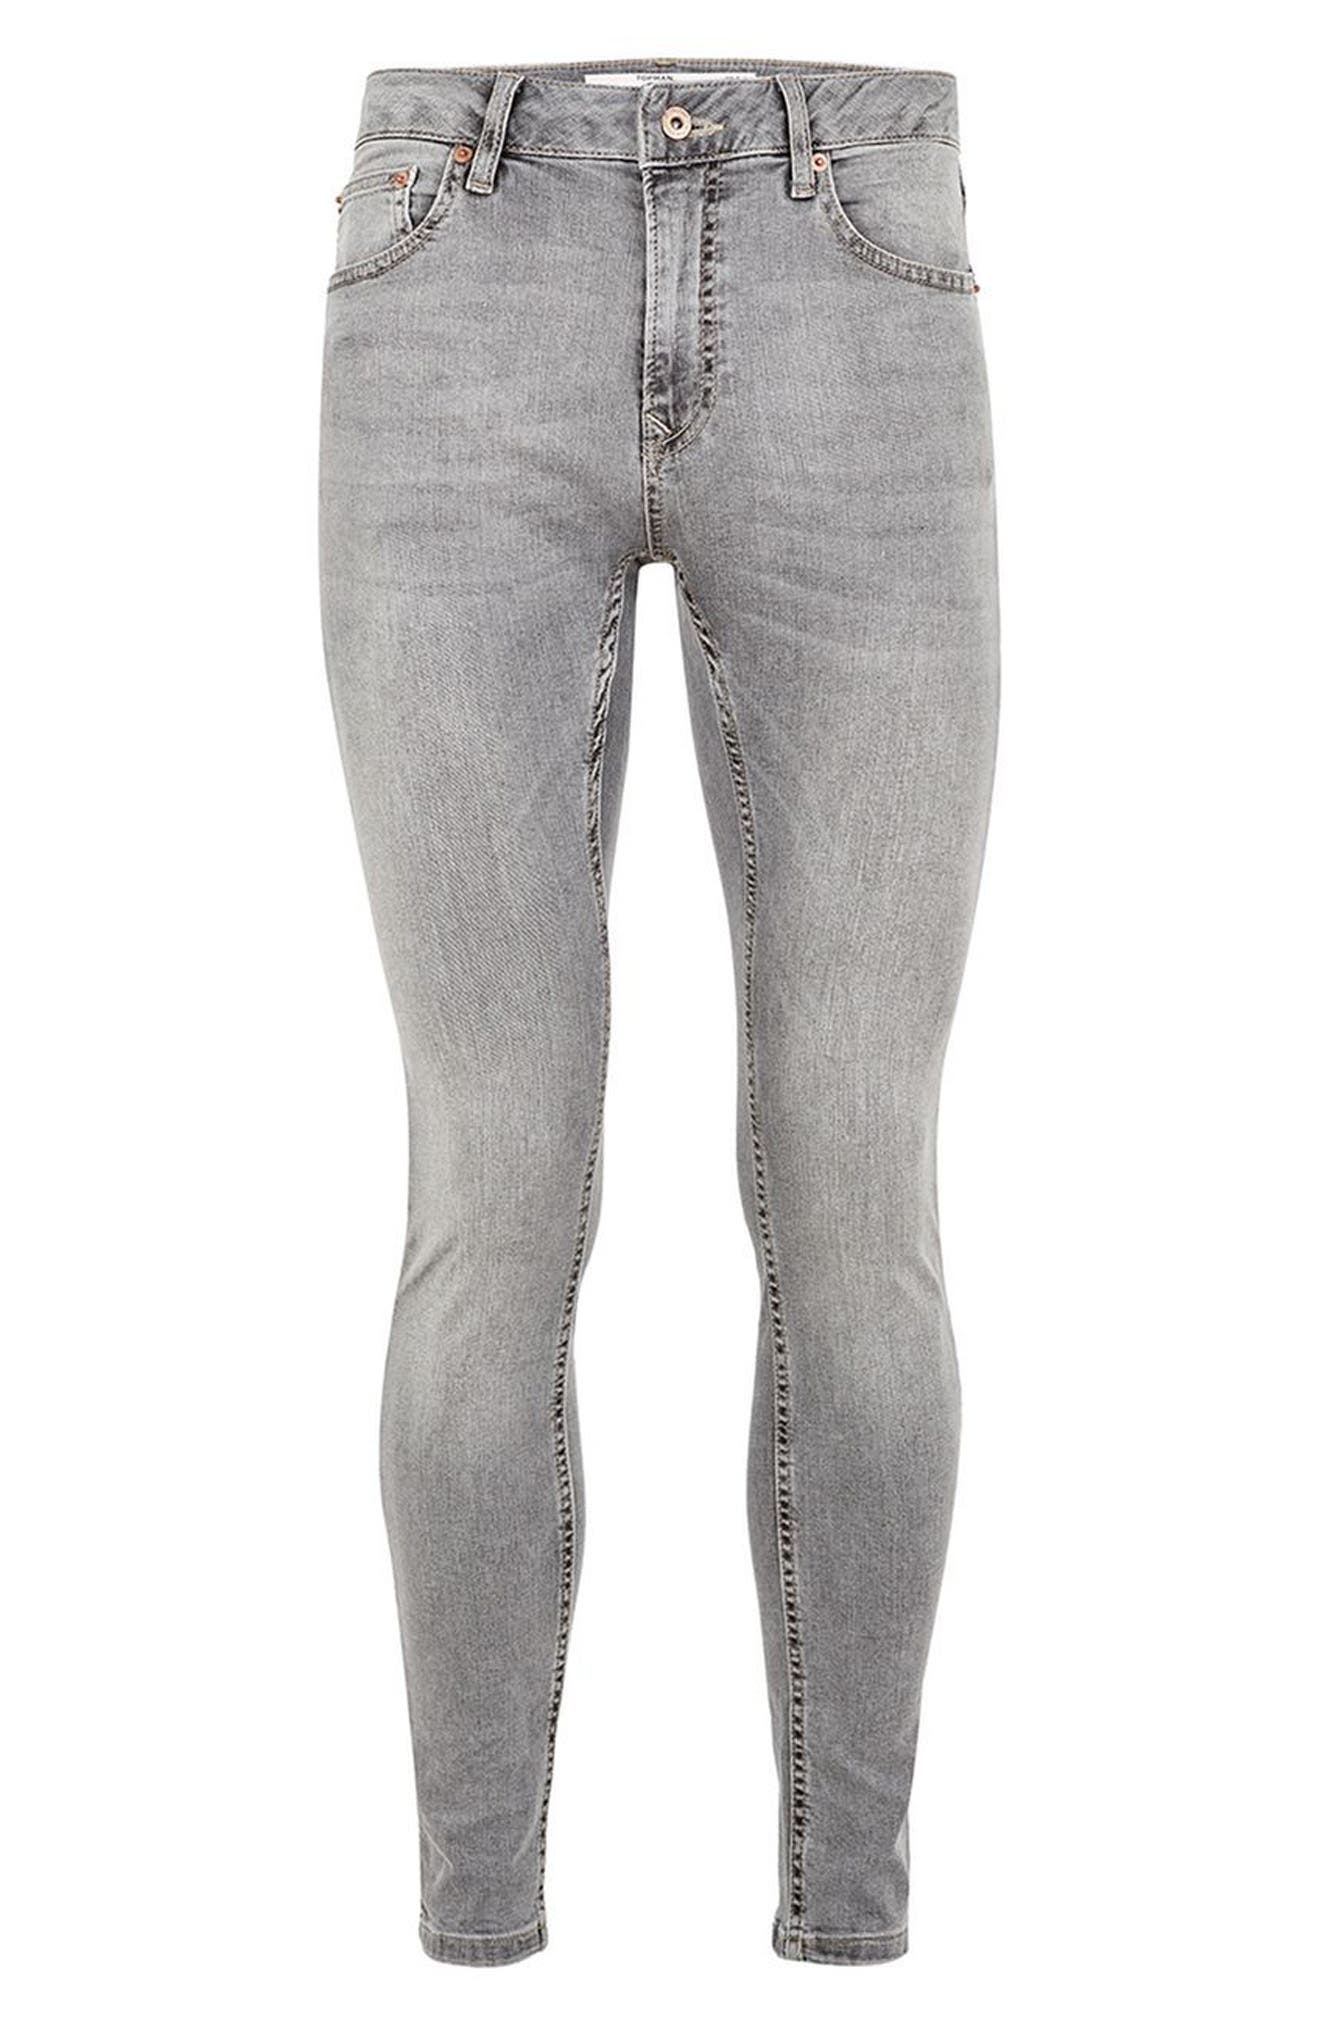 Spray-On Skinny Fit Jeans,                             Alternate thumbnail 4, color,                             Grey